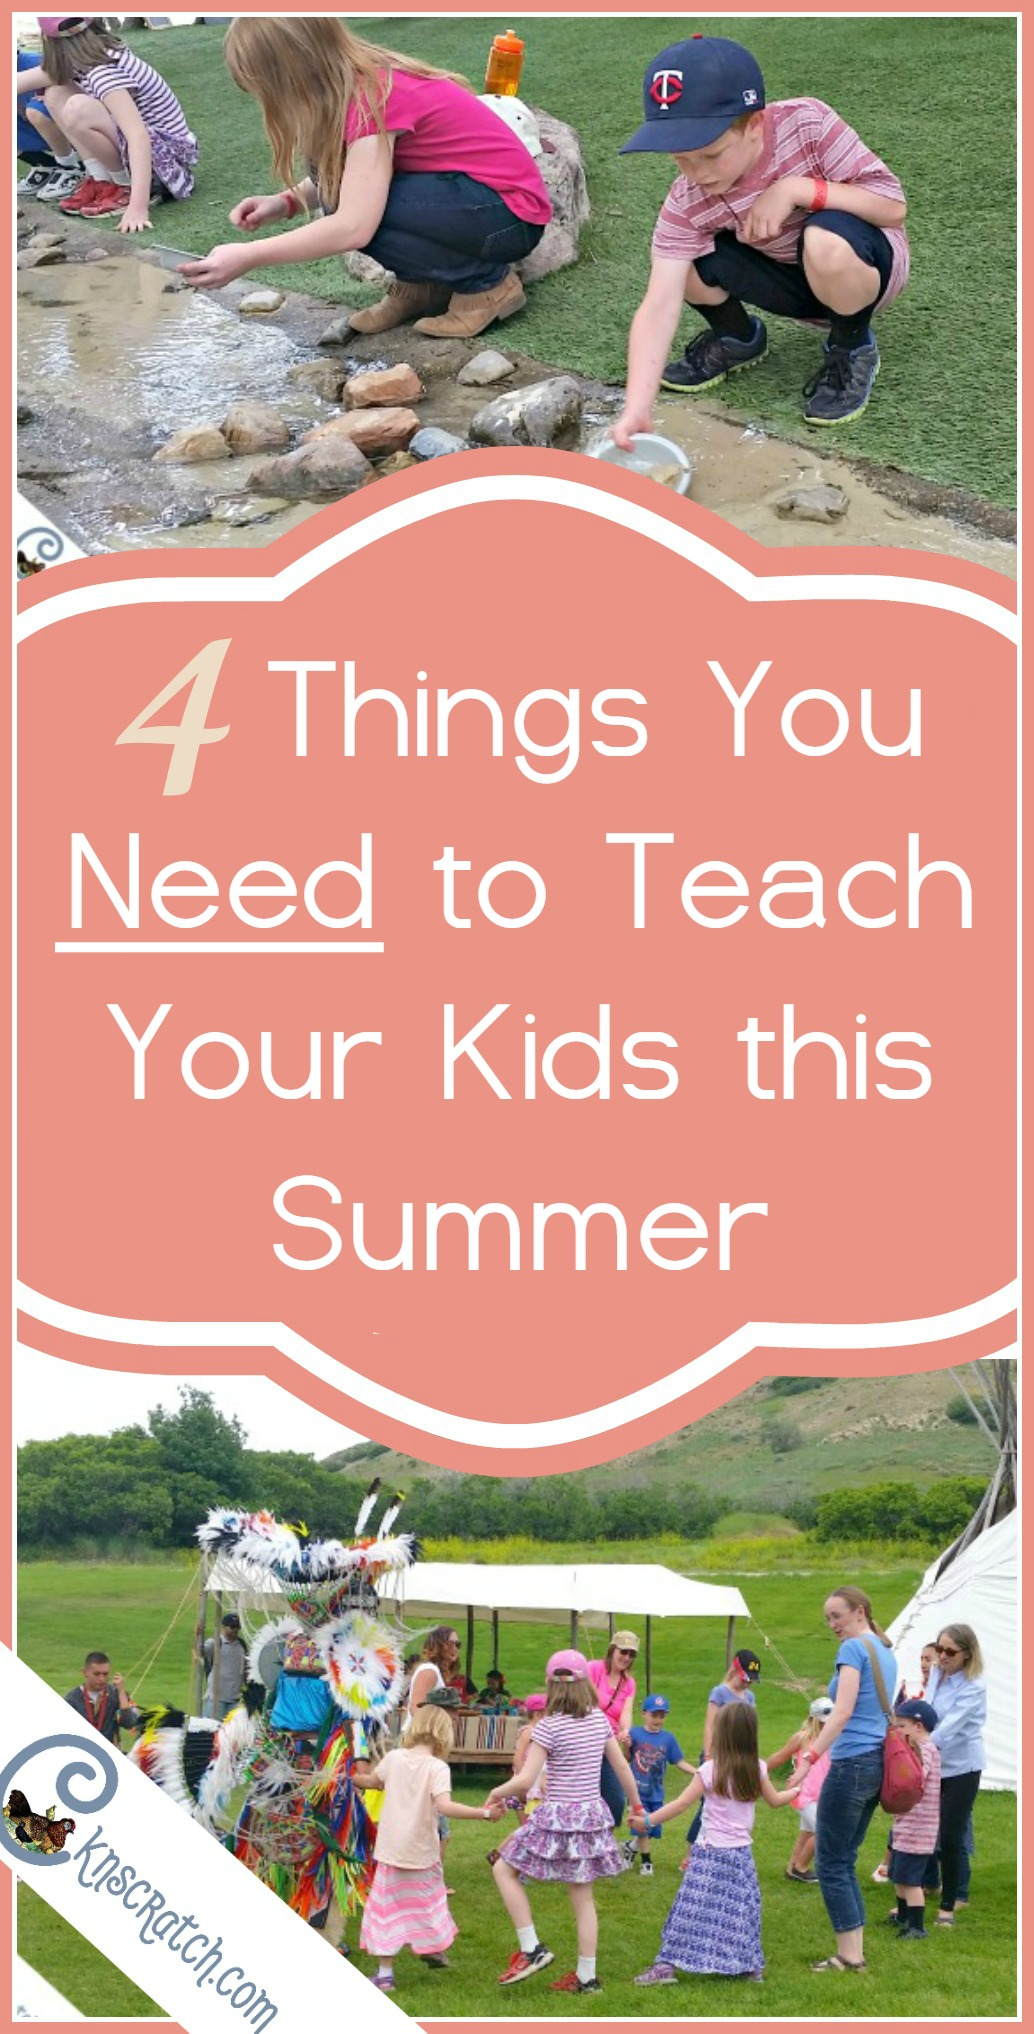 Yes to all of these! Great list of things that all children should be taught every summer.